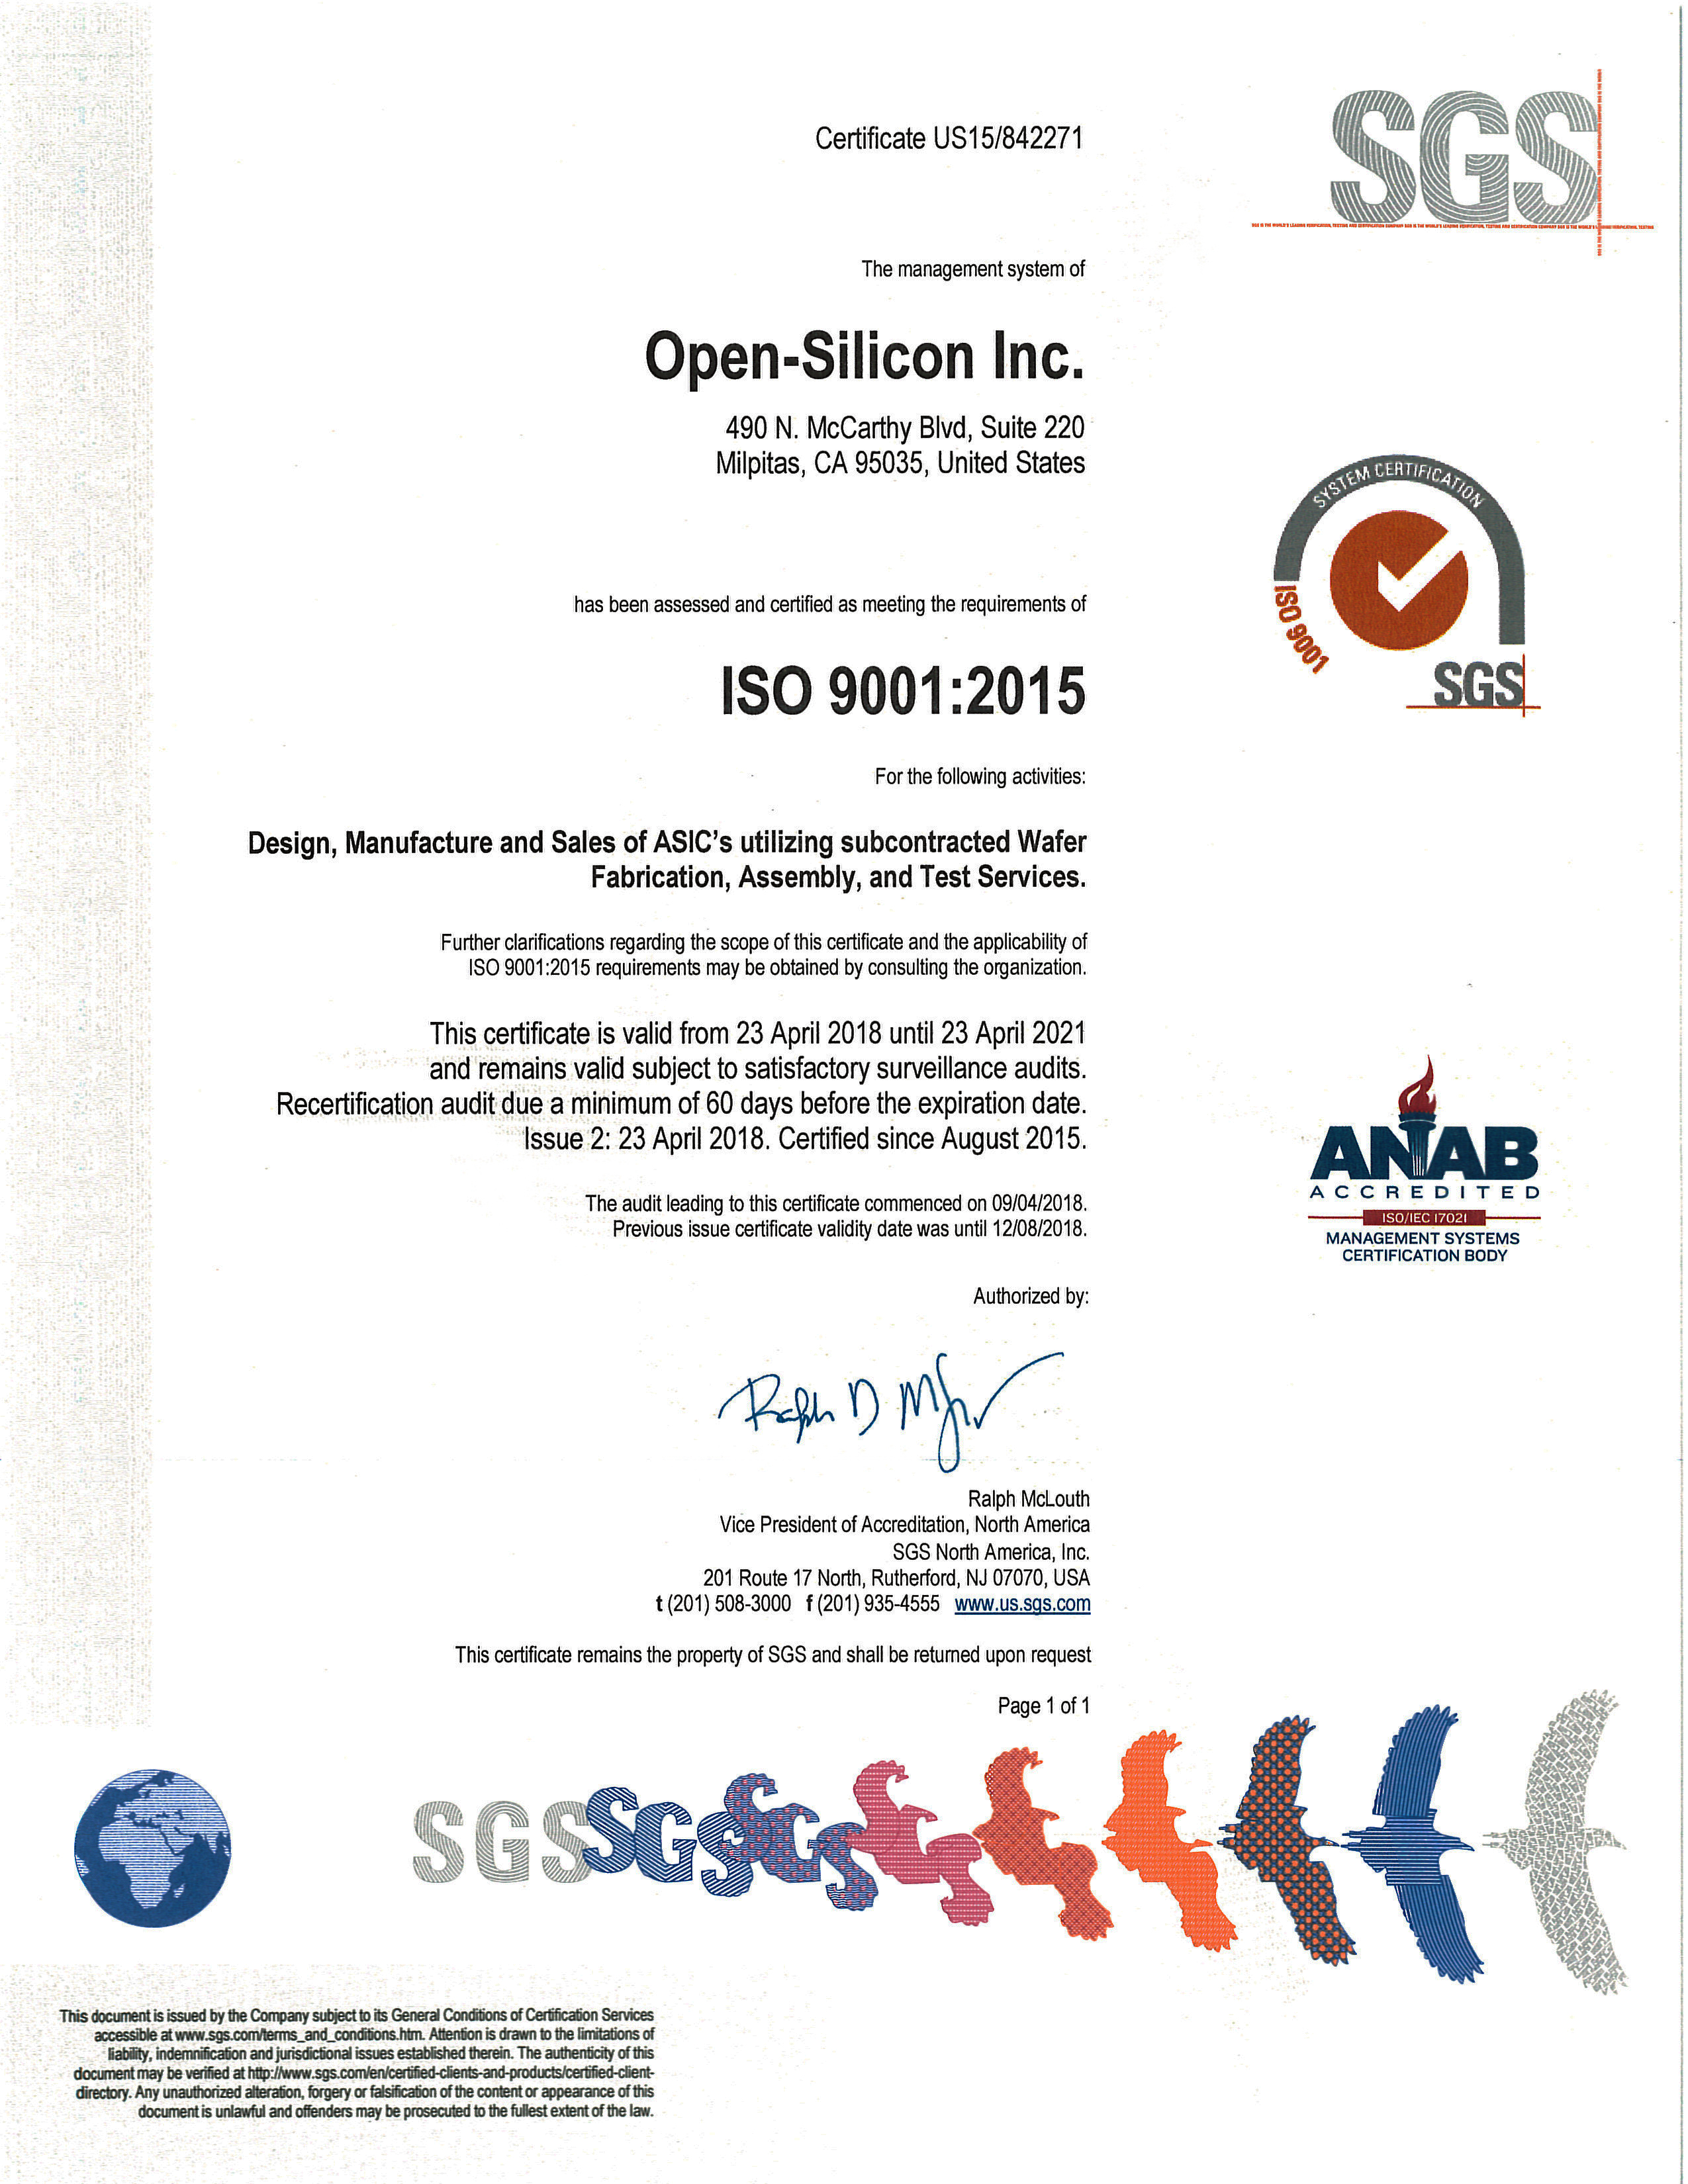 Open-Silicon Achieves ISO 9001:2015 Certification